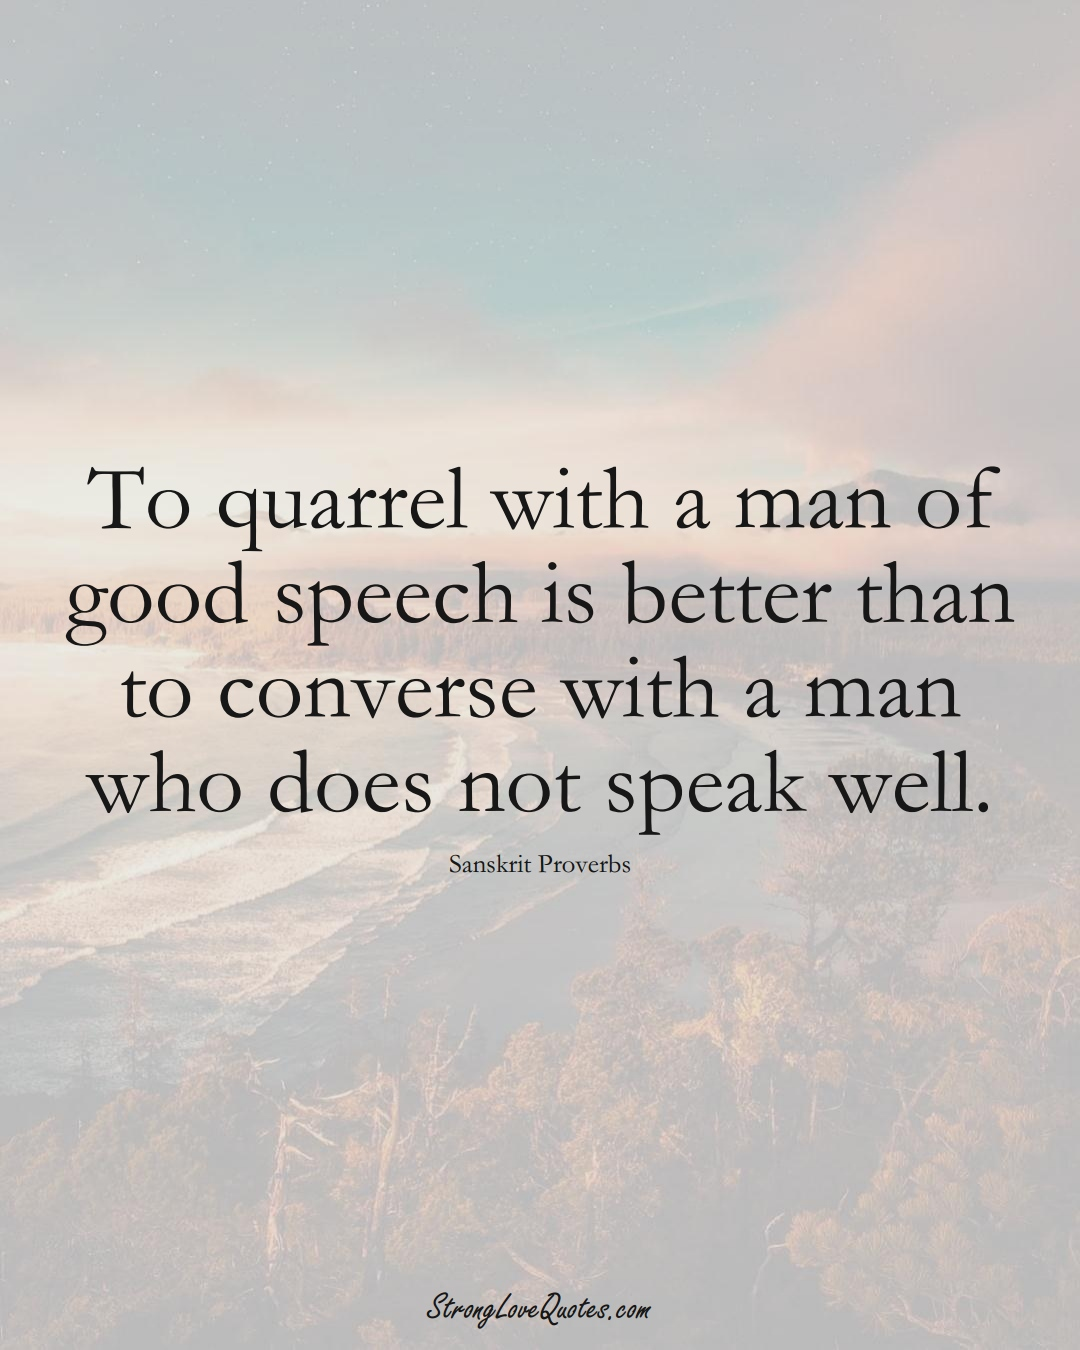 To quarrel with a man of good speech is better than to converse with a man who does not speak well. (Sanskrit Sayings);  #aVarietyofCulturesSayings